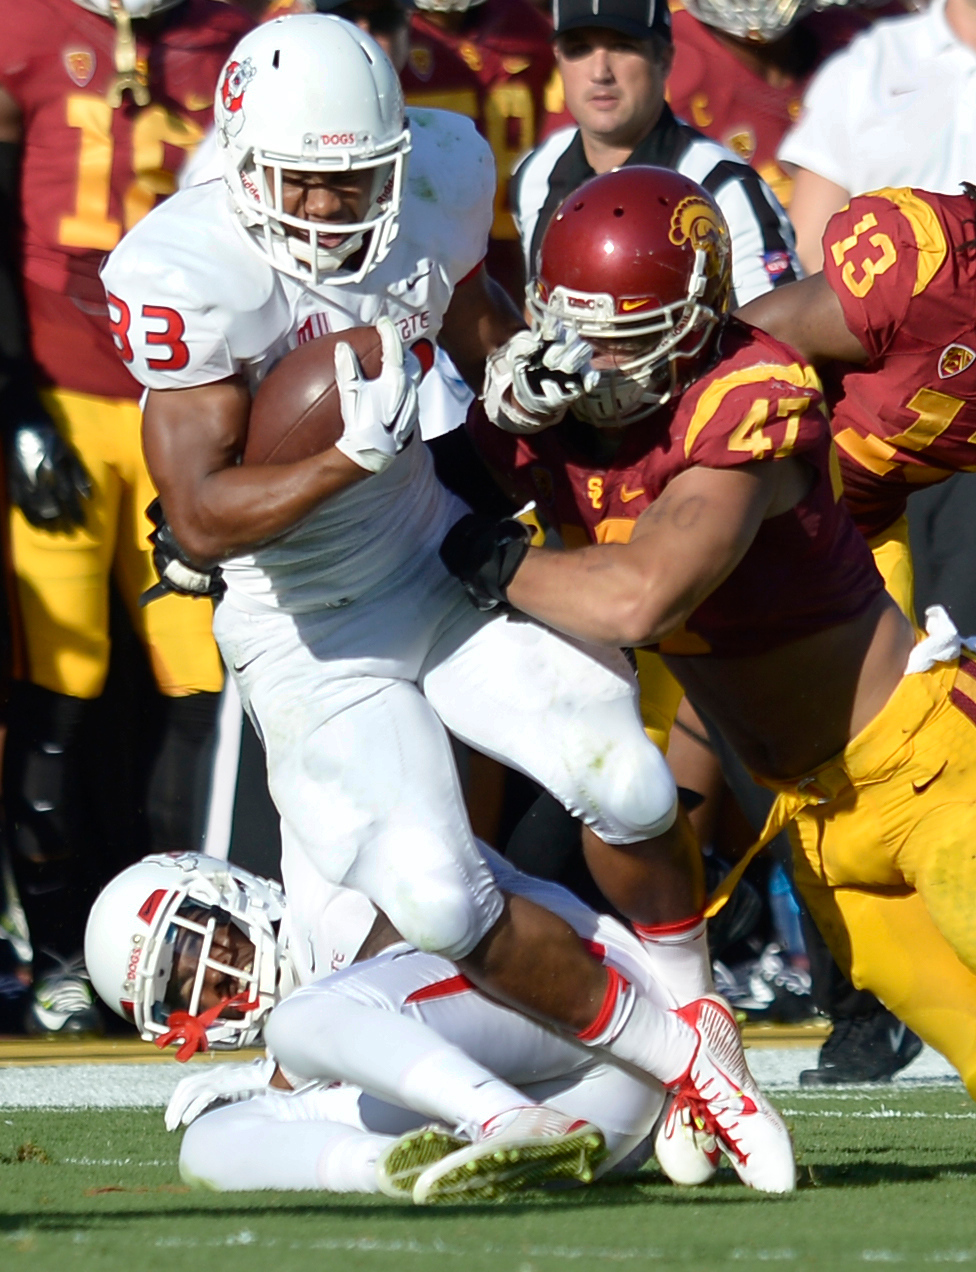 . Fresno #33 Marteze Waller is brought down by #47 Scott Felix in the 2nd quarter. USC played Fresno State at the Los Angeles Memorial Coliseum for the first game of the year. Los Angeles, CA. 8/30/2014(Photo by John McCoy Daily News